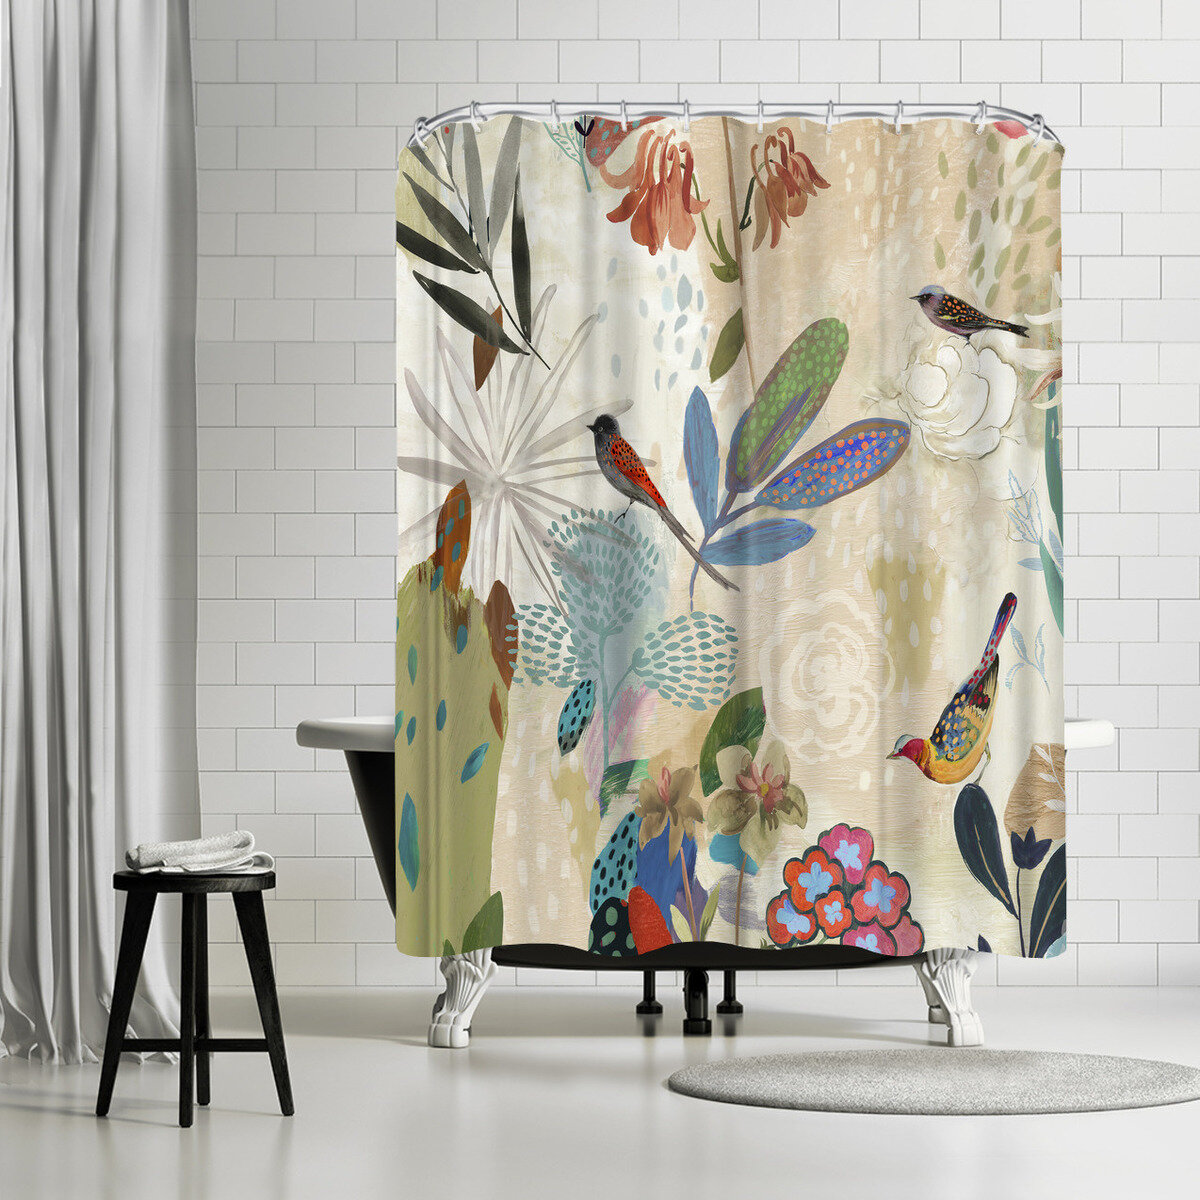 East Urban Home Pi Creative Art Where The Passion Flower Grows I Single Shower Curtain Reviews Wayfair